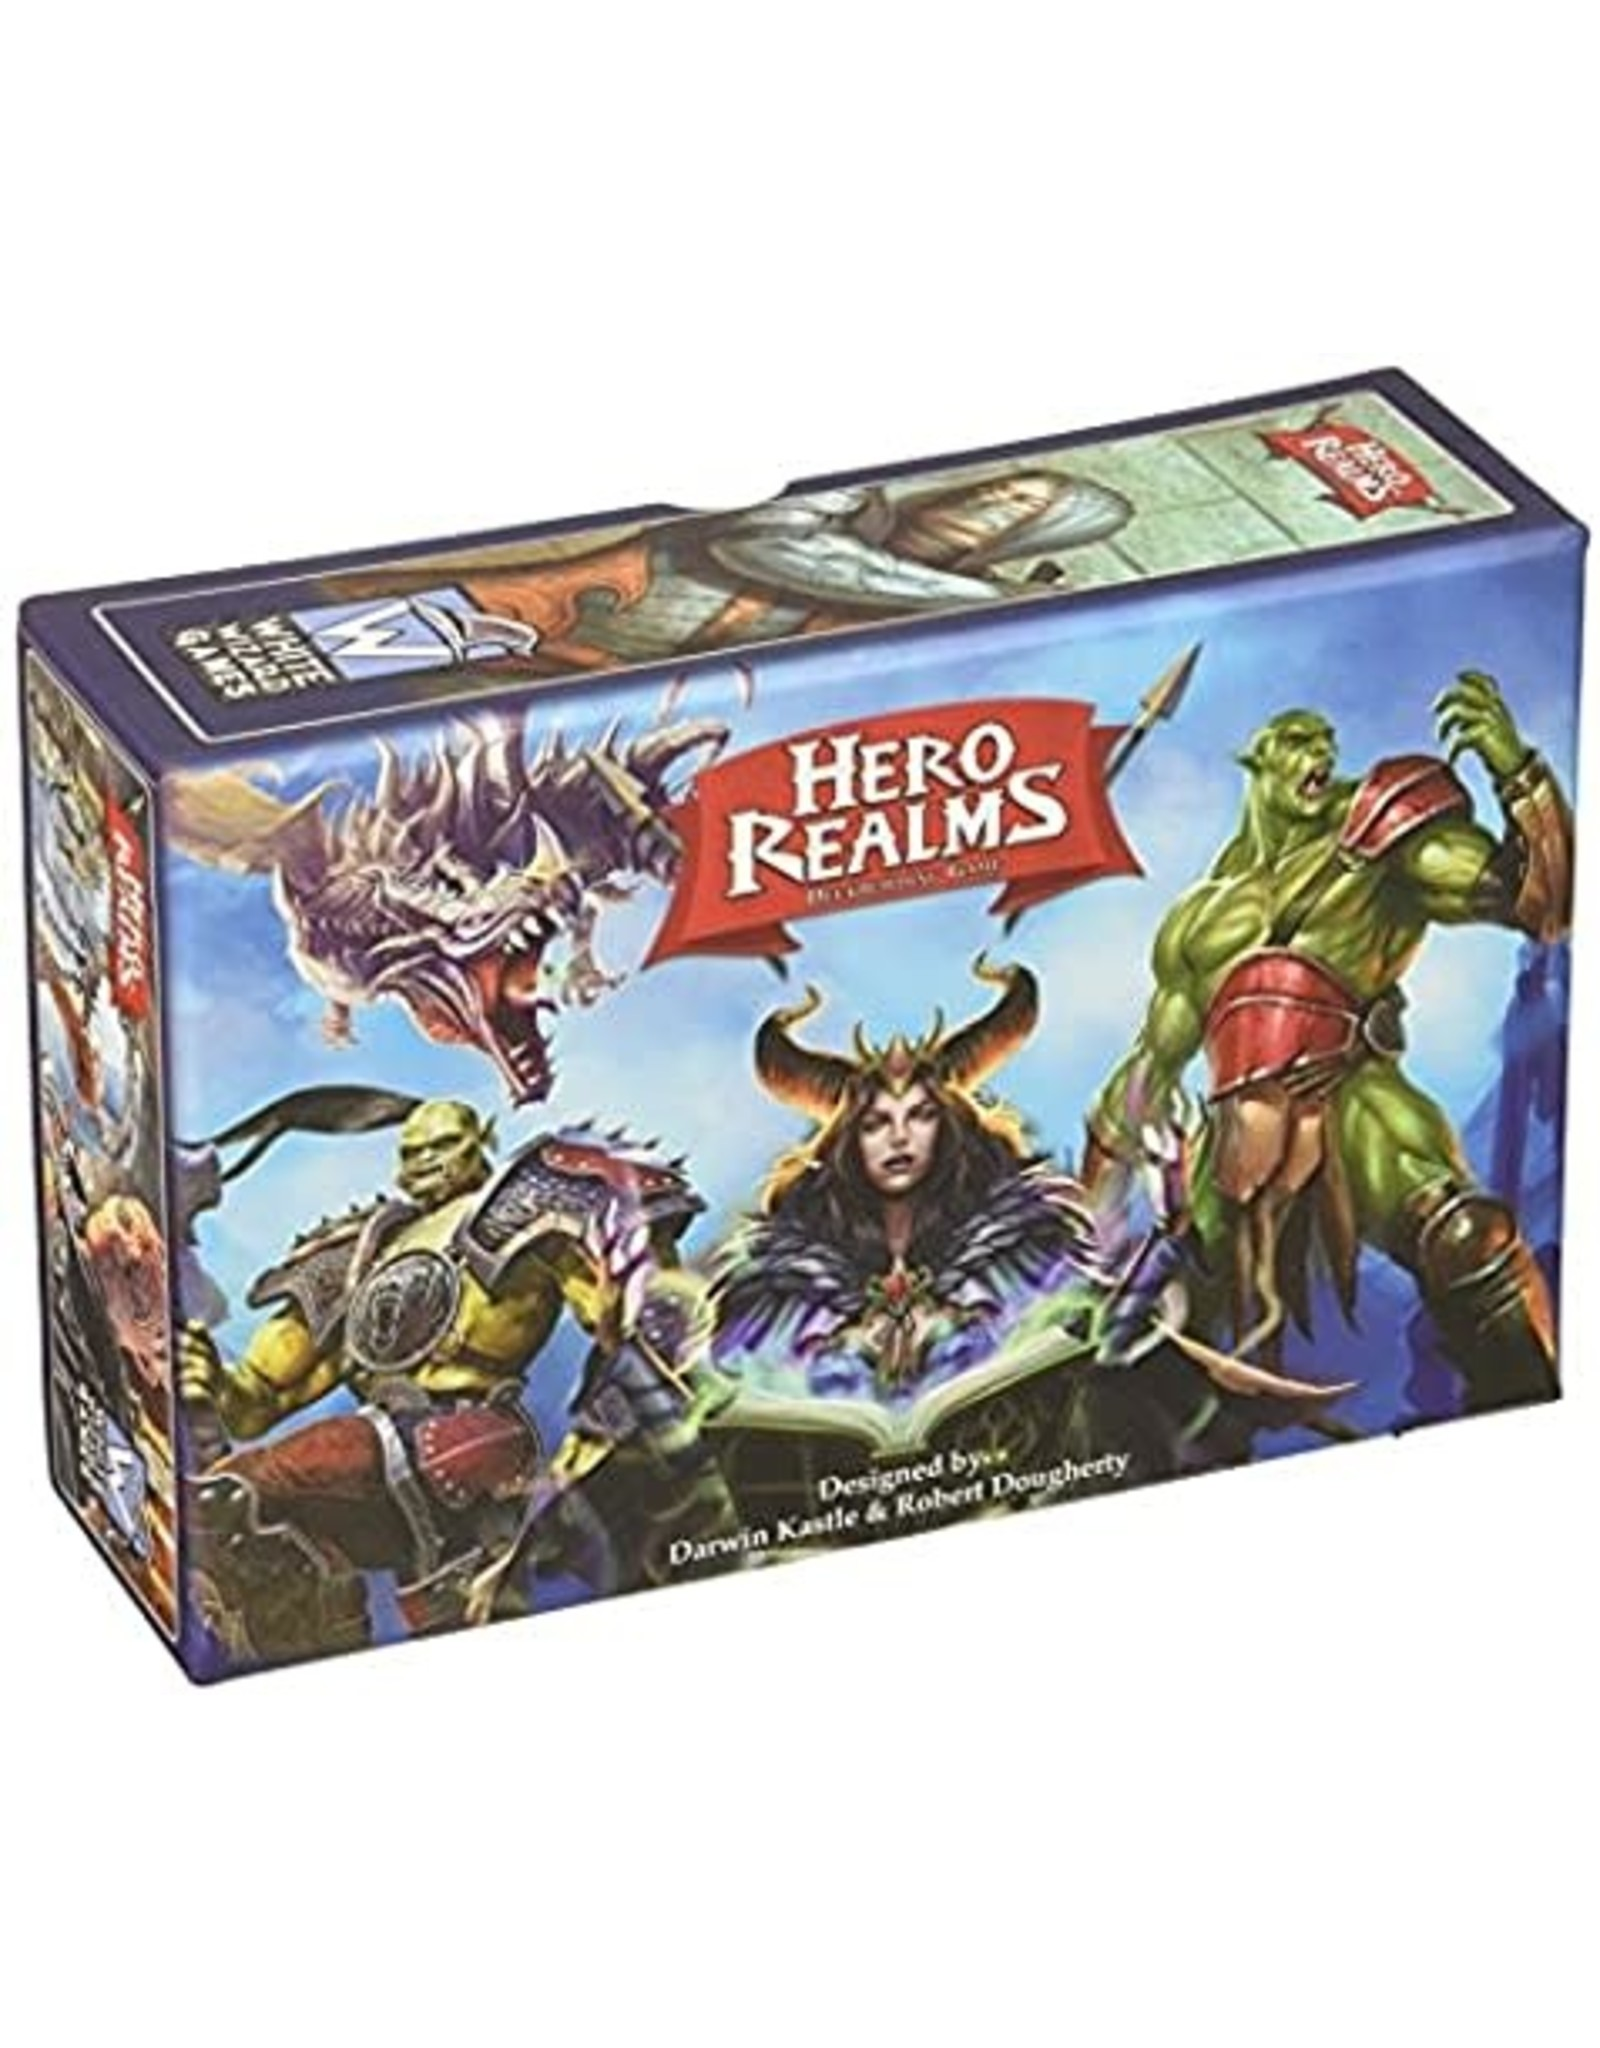 White Wizard Games Hero Realms Deck Building Game